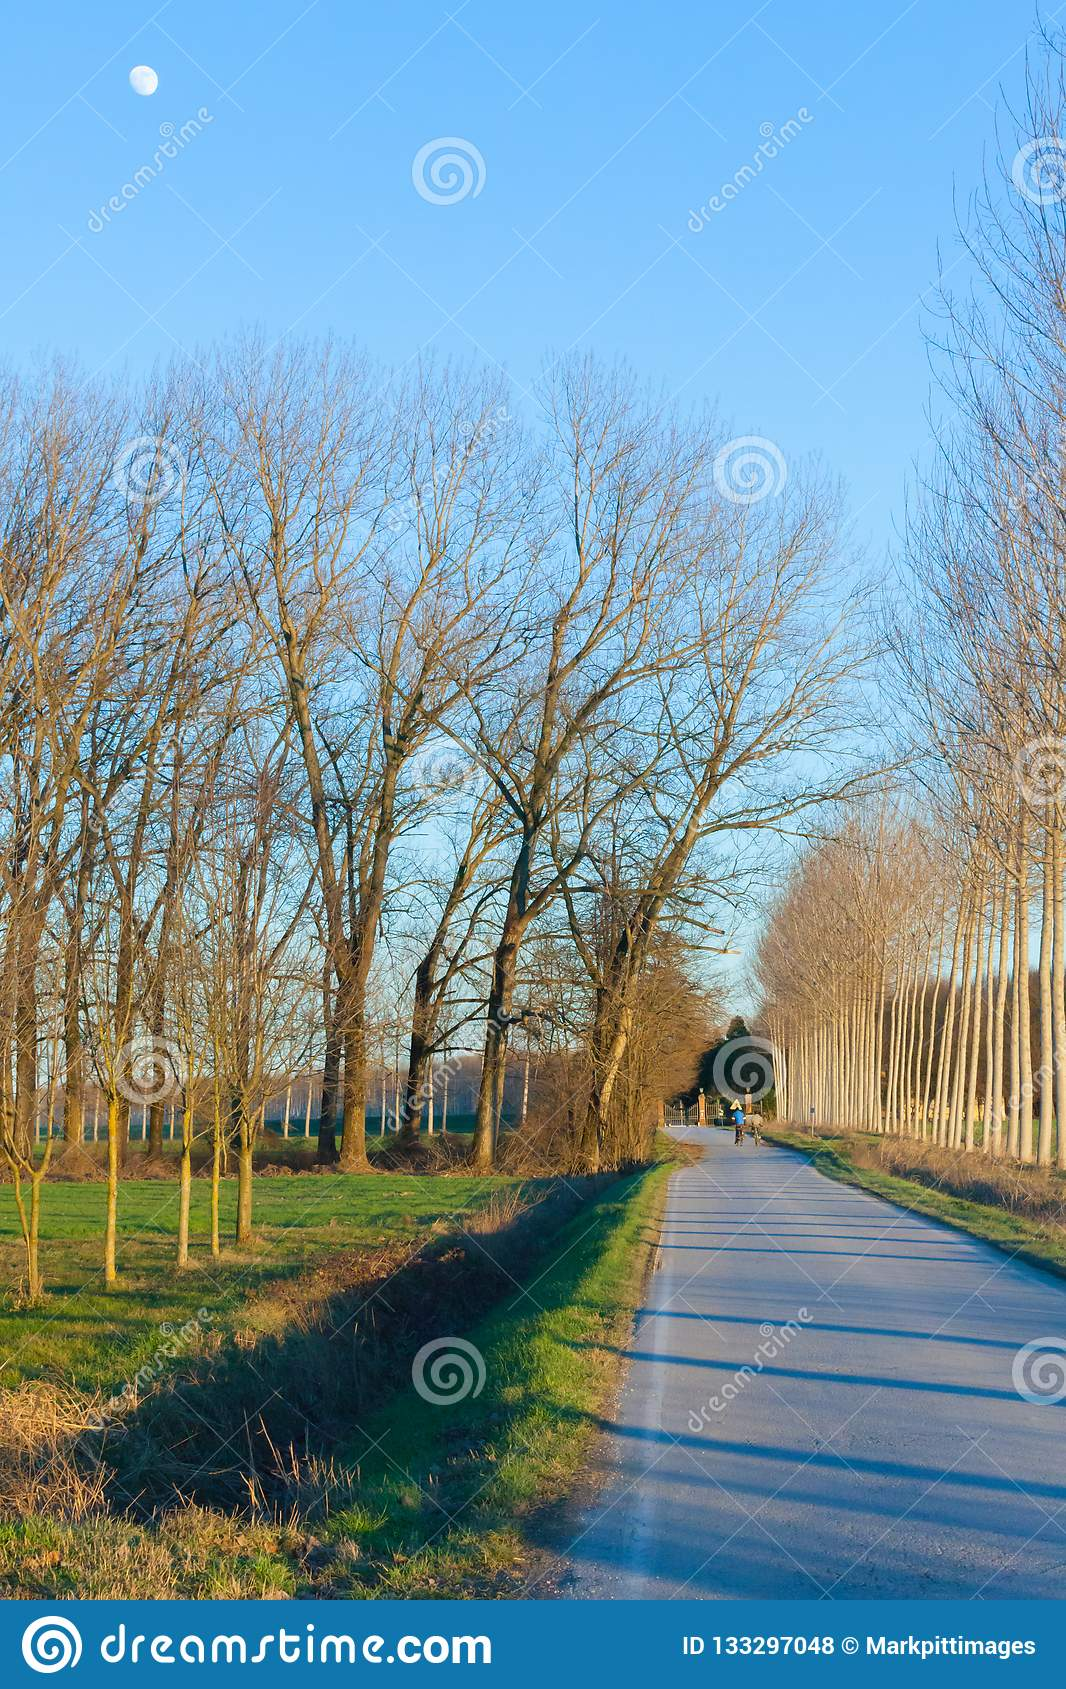 Tree lined road in the countryside sunset with the moon